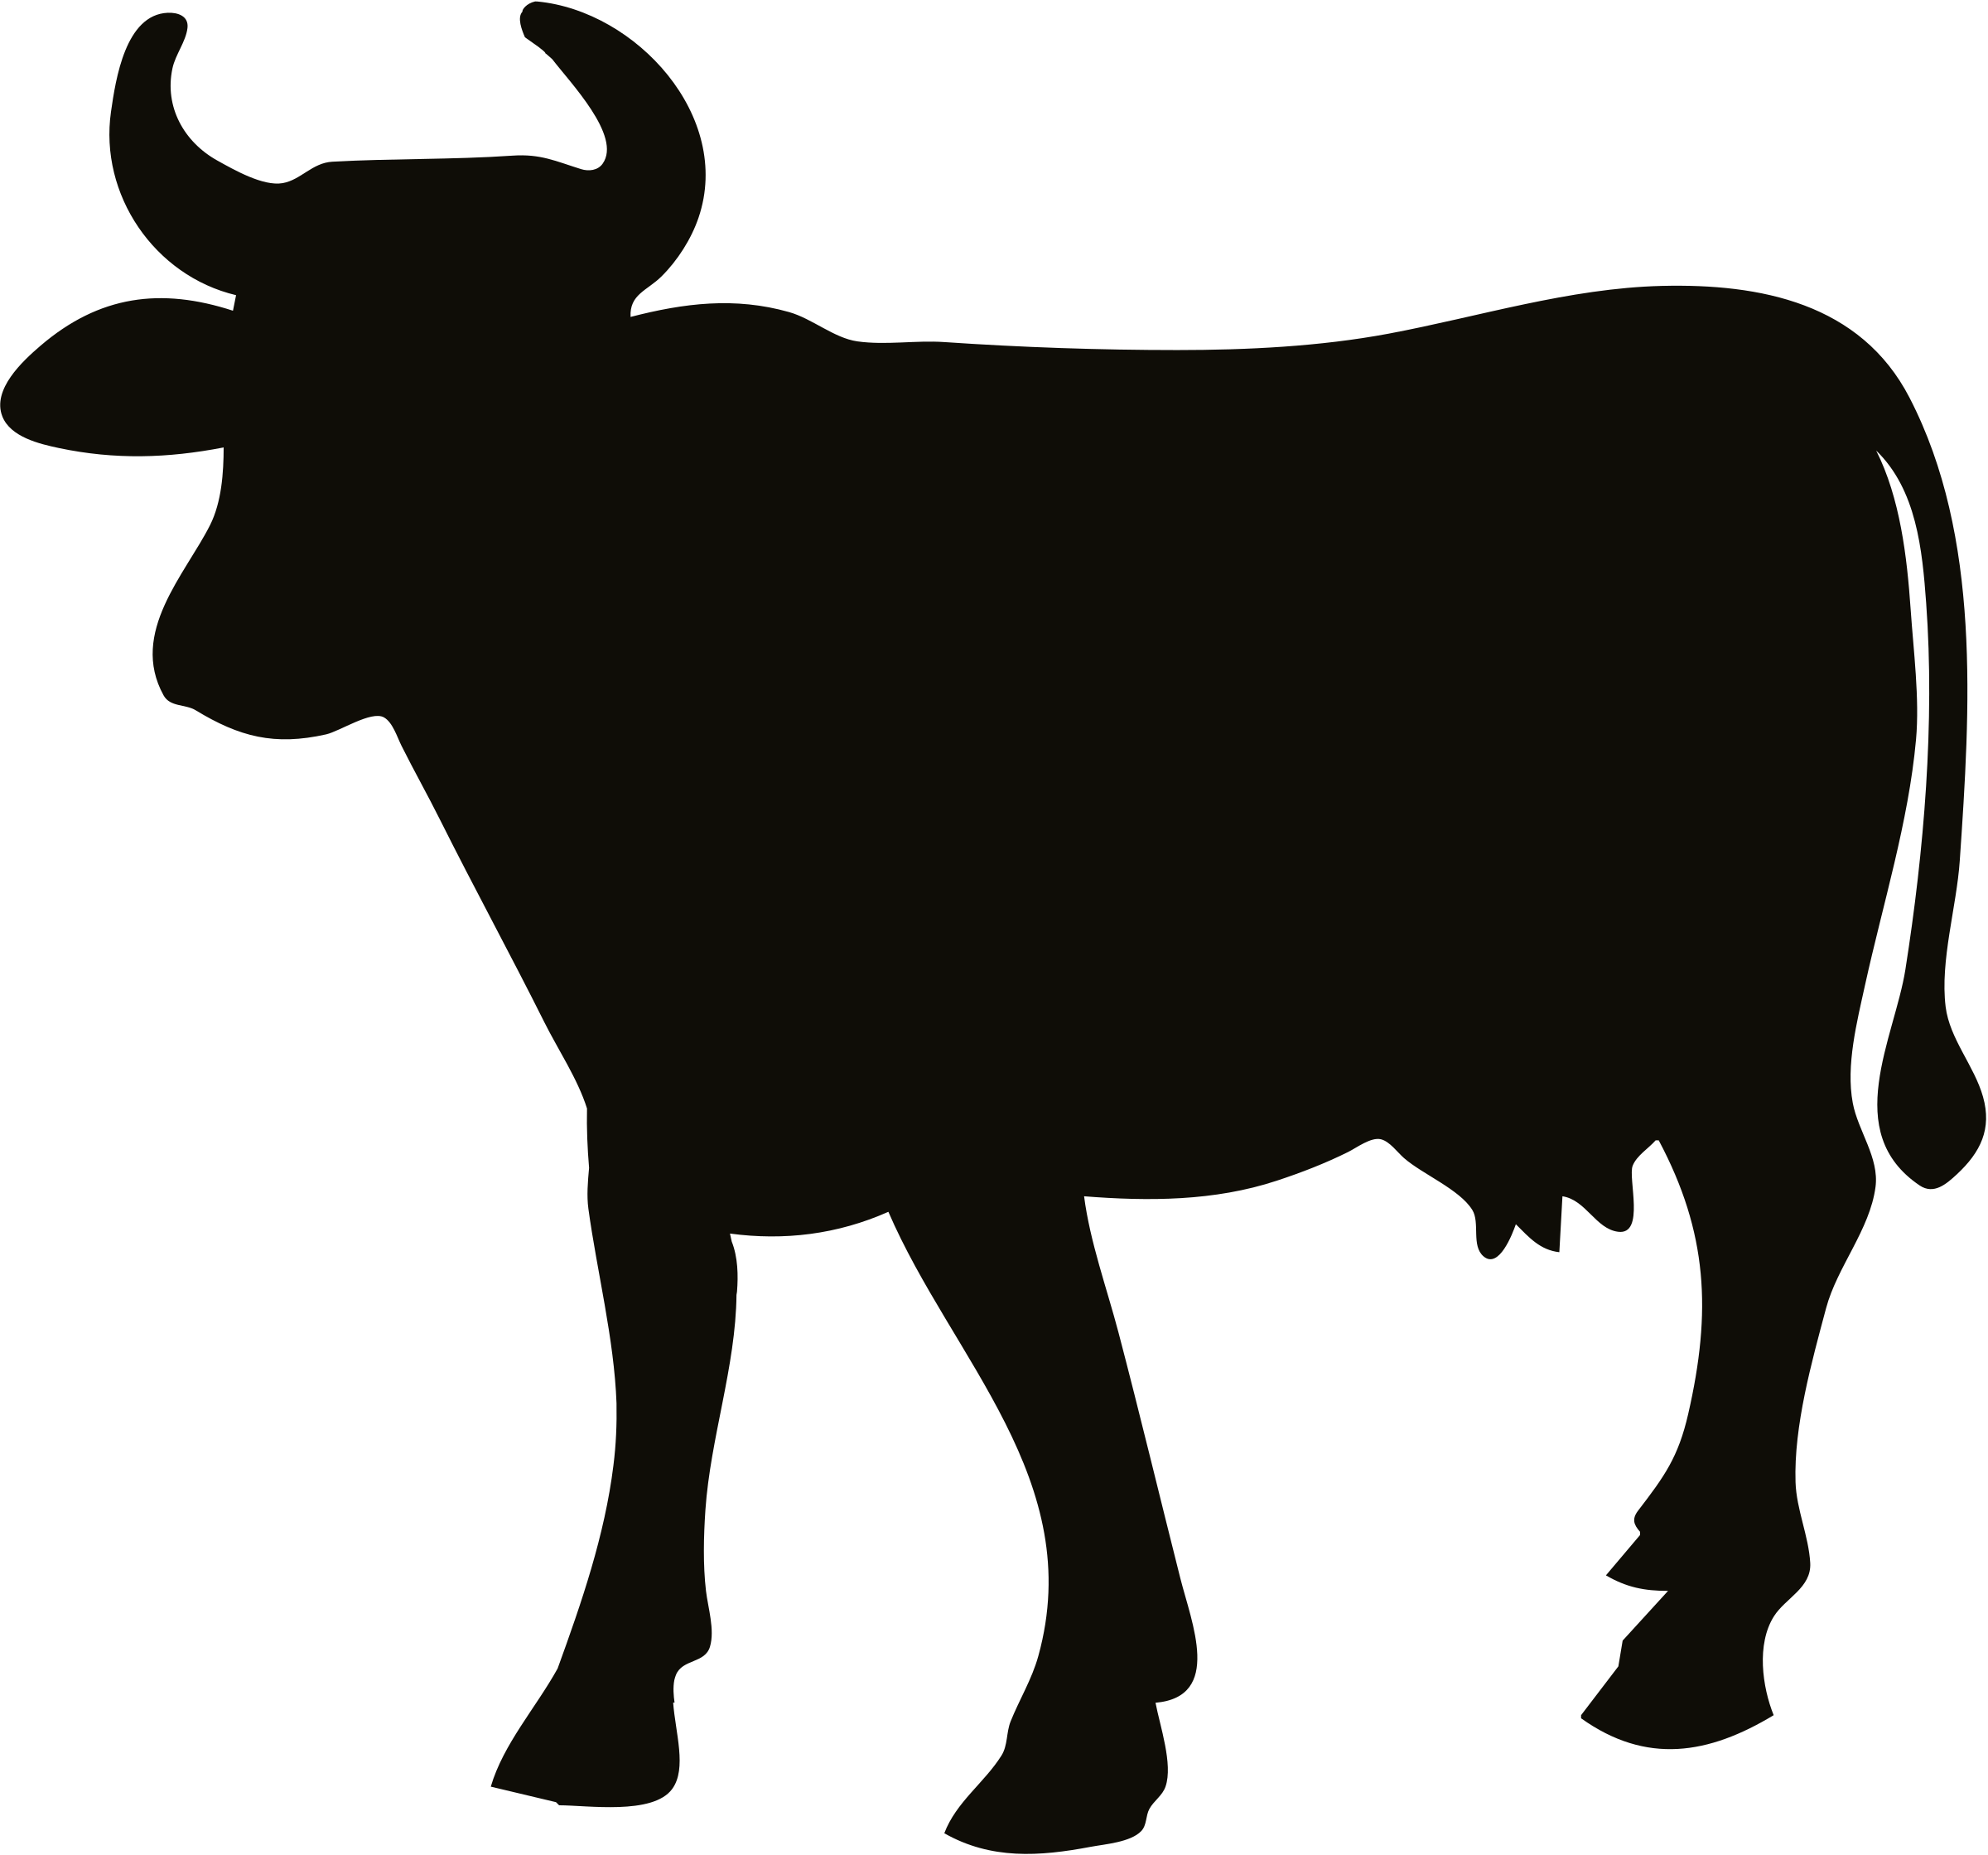 Cow silhouette by Firkin